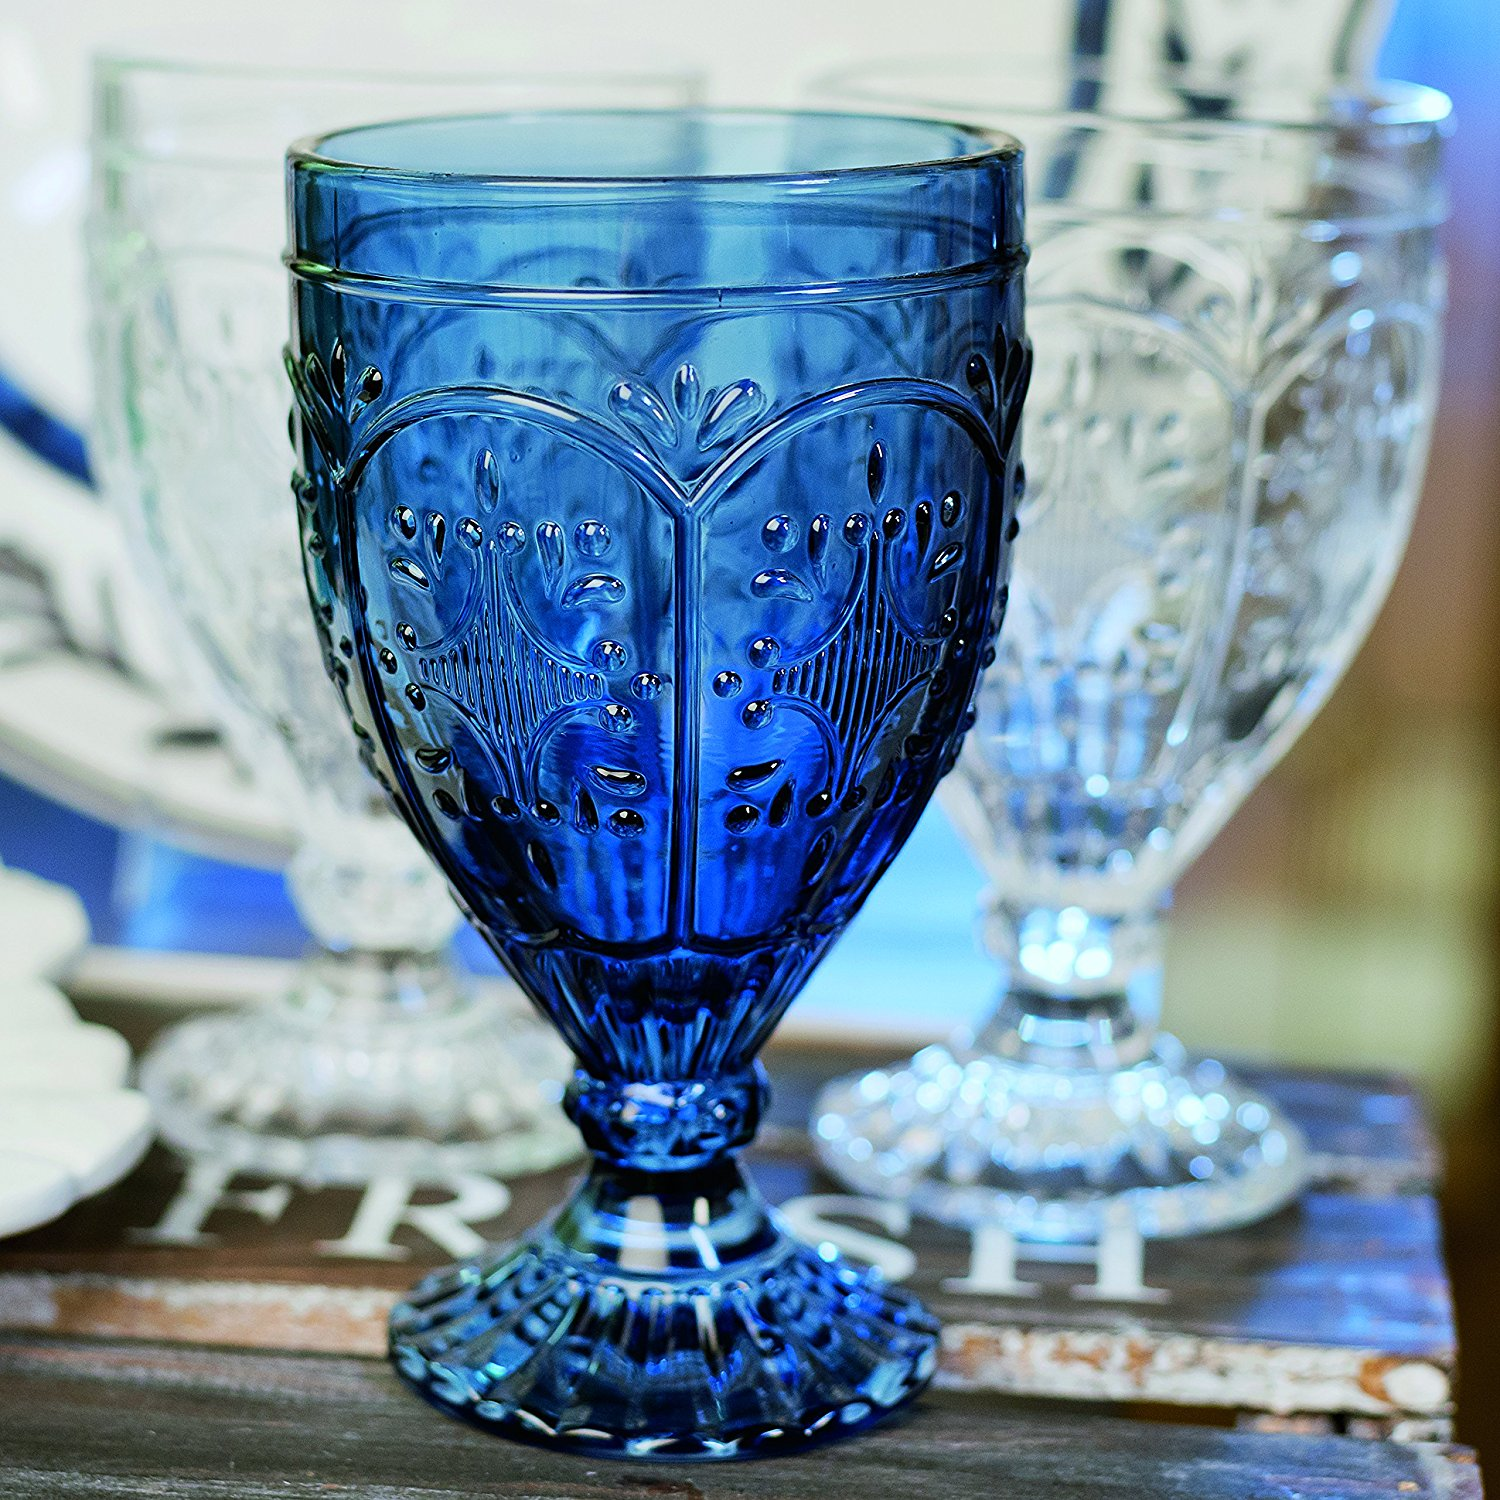 indigo goblet   Size: 12 oz  Price: $1.75  Quantity Available: 160